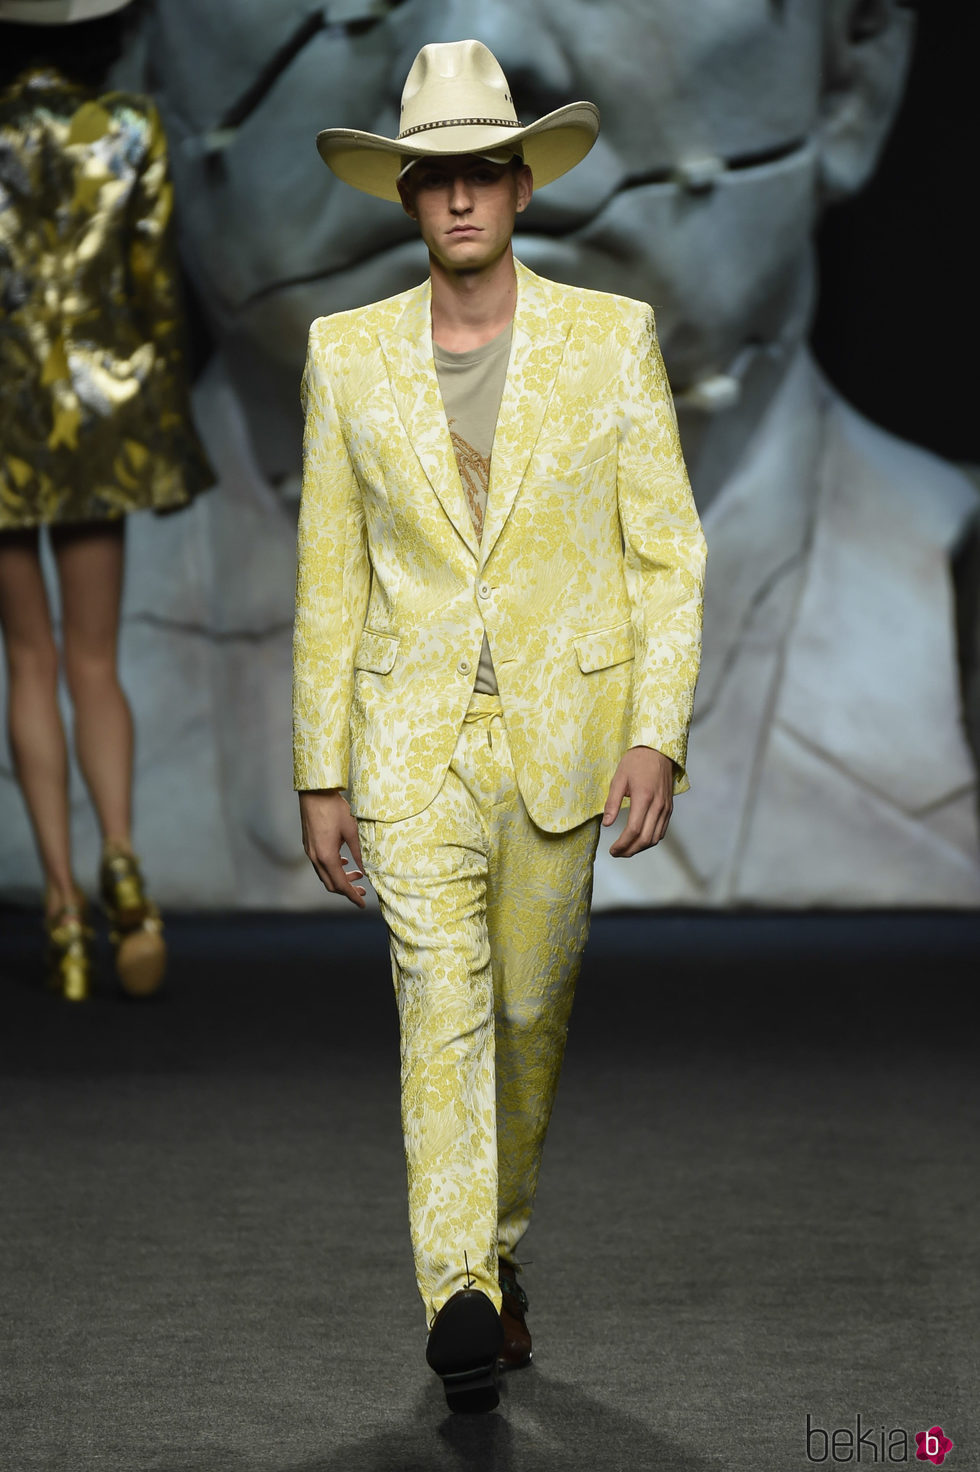 Traje amarillo bordado de hombre de Ana Locking primavera/verano 2018 para Madrid Fashion Week